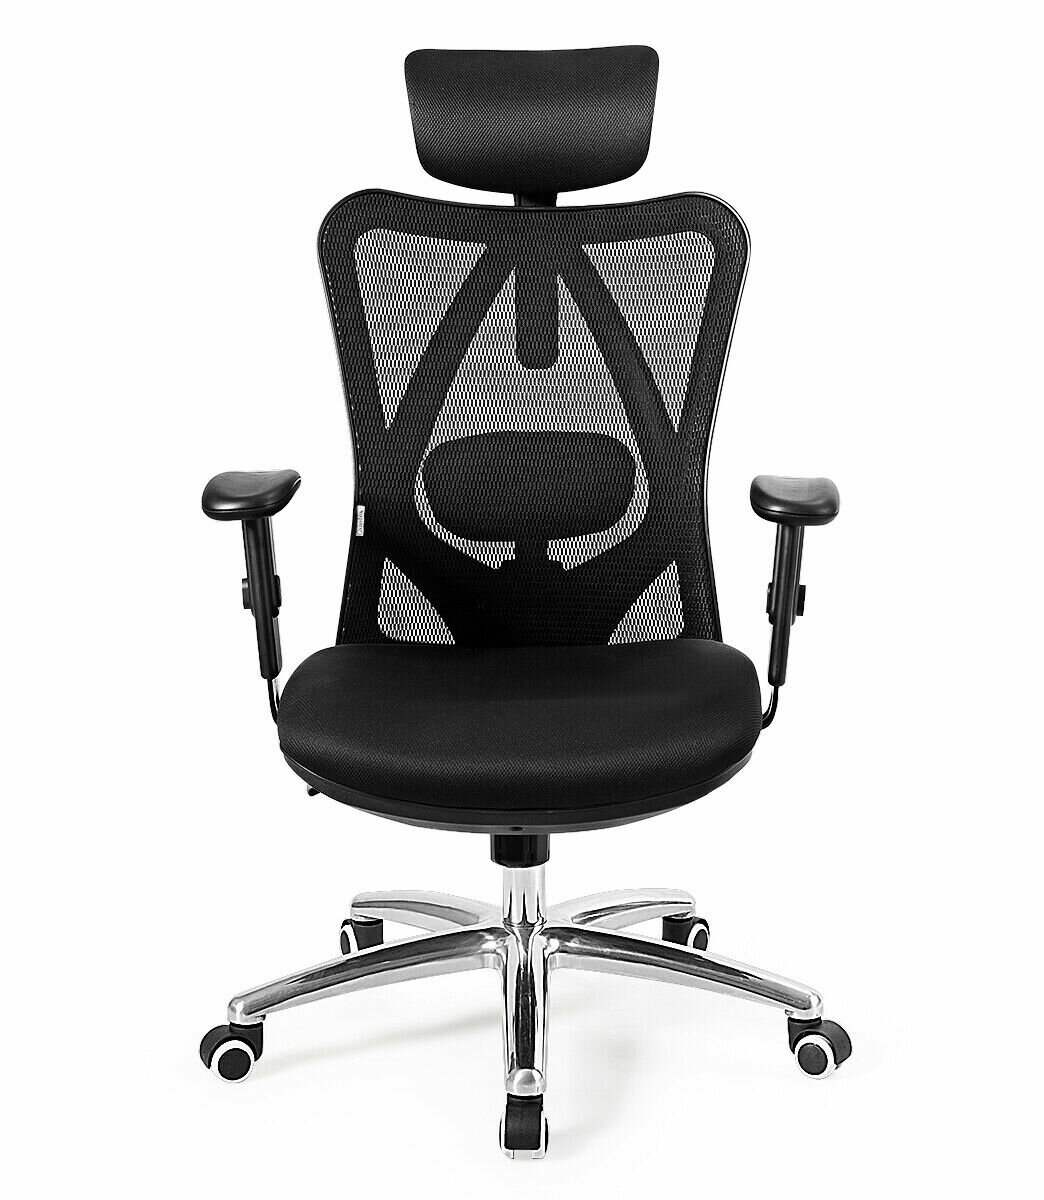 Ebern Designs High Back Mesh Office Chair Adjustable Lumbar Support Headrest Home Study Black Wayfair